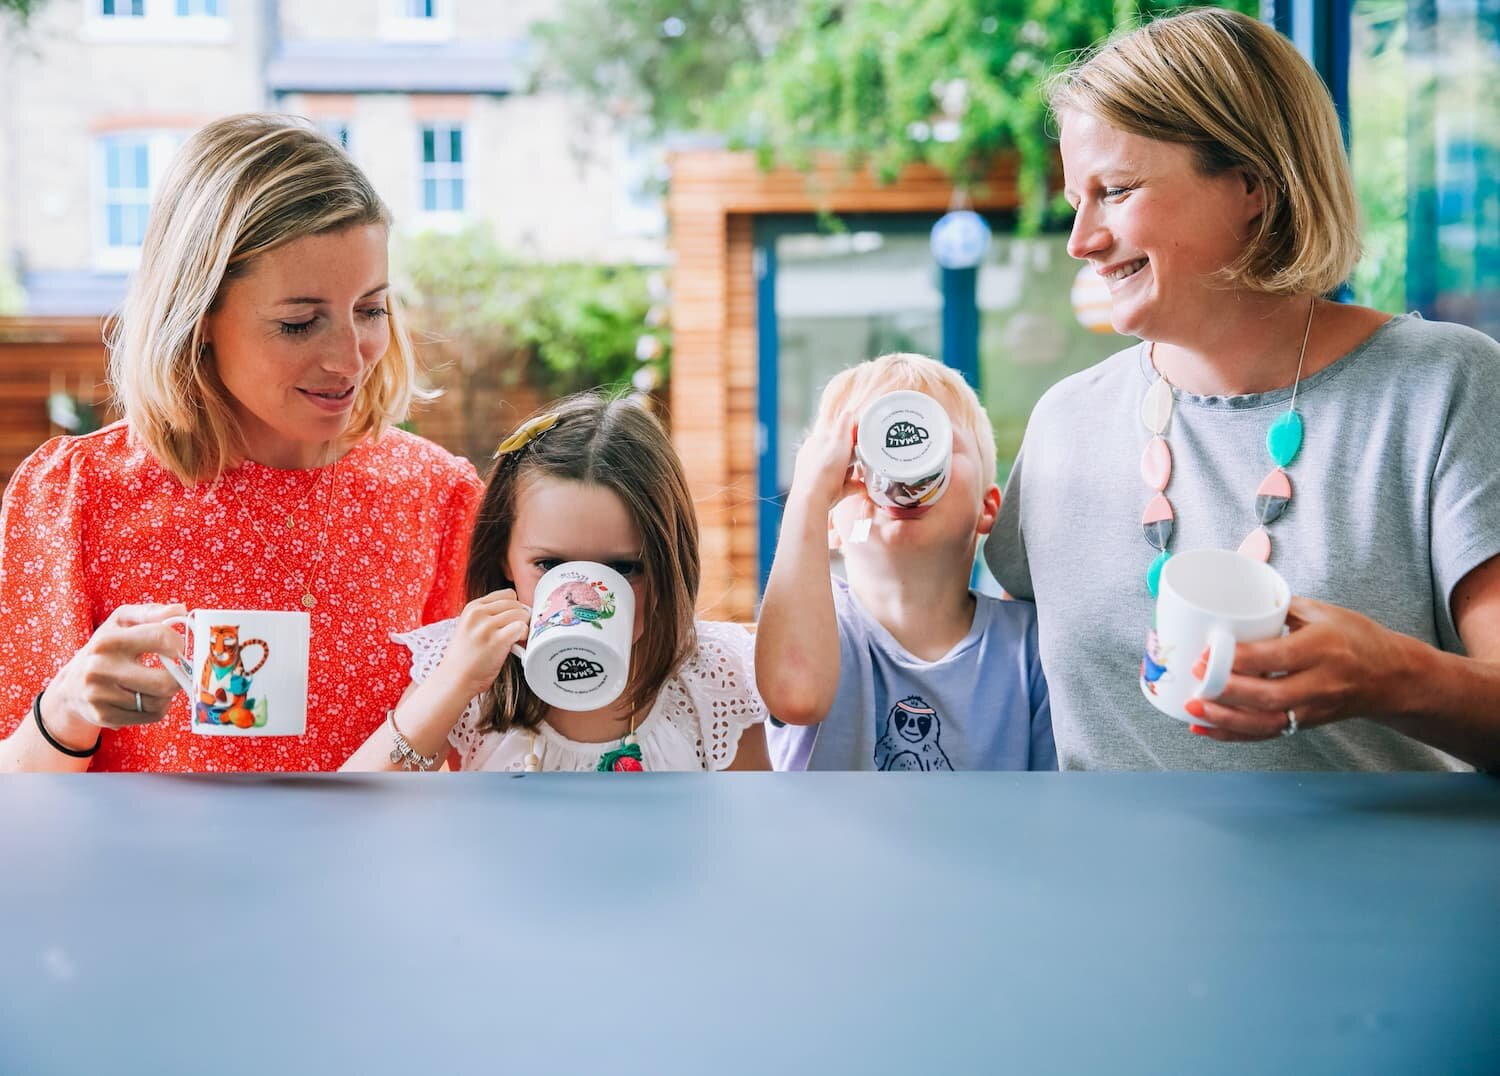 Two mums sharing a herbal tea with their children